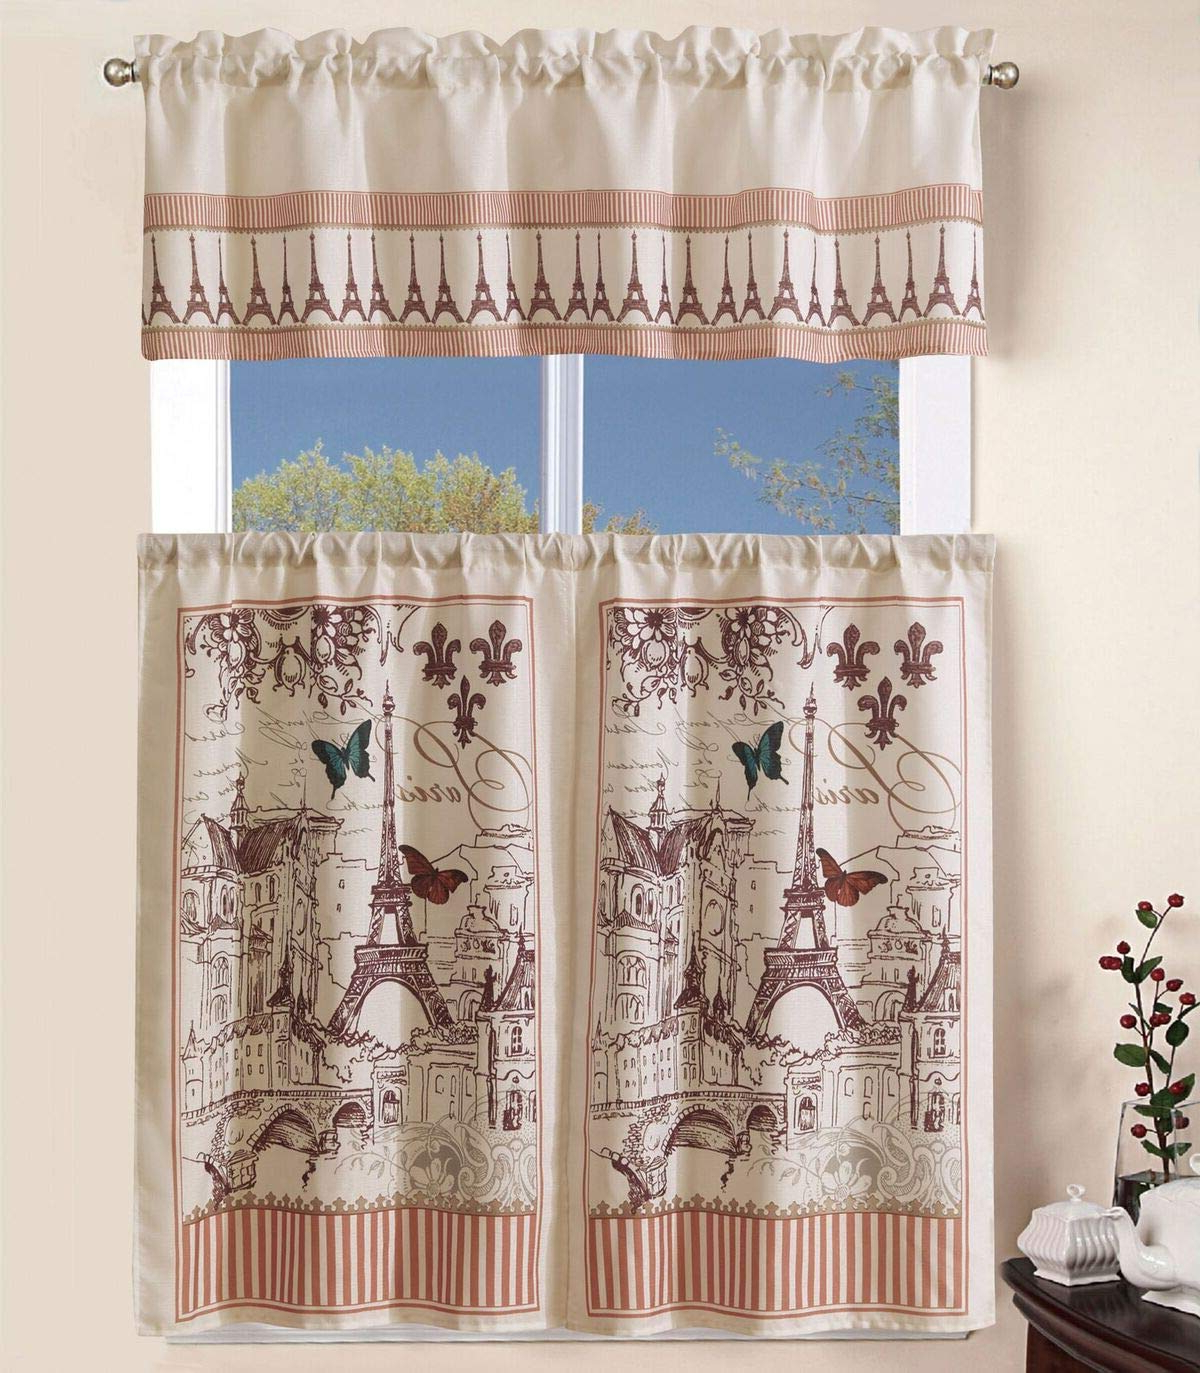 """Superior Home 3 Piece Kitchen Curtain Linen Set With 2 Tiers 27"""" W (Total Width 54"""") X 36"""" L And 1 Tailored Valance 54"""" W X 15"""" L, France Paris Eiffel For Well Known Solid Microfiber 3 Piece Kitchen Curtain Valance And Tiers Sets (View 14 of 20)"""